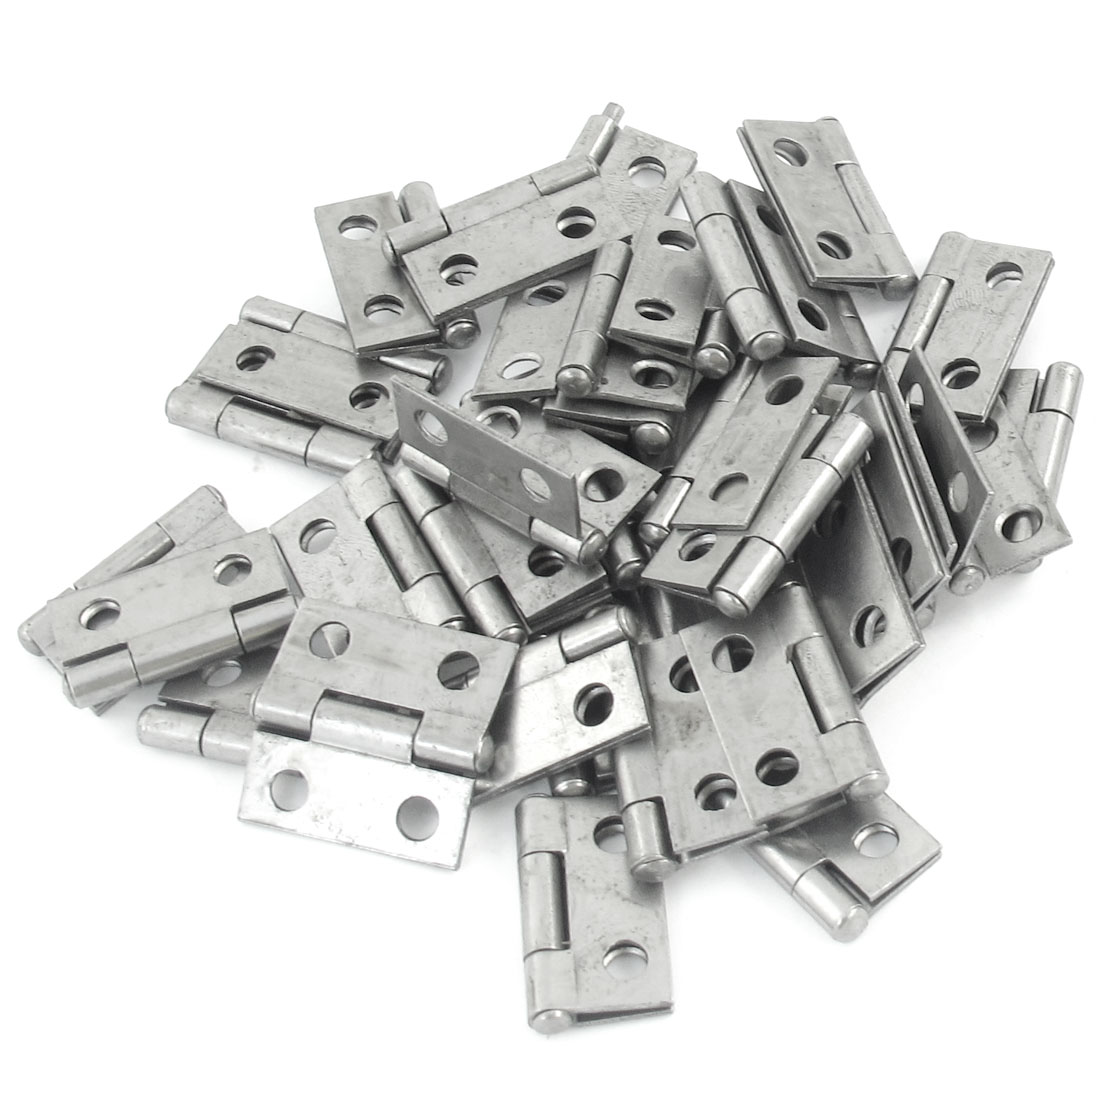 "40 Pcs 1"" Long Silver Tone Metal Cabinets Window Doors Hinges"